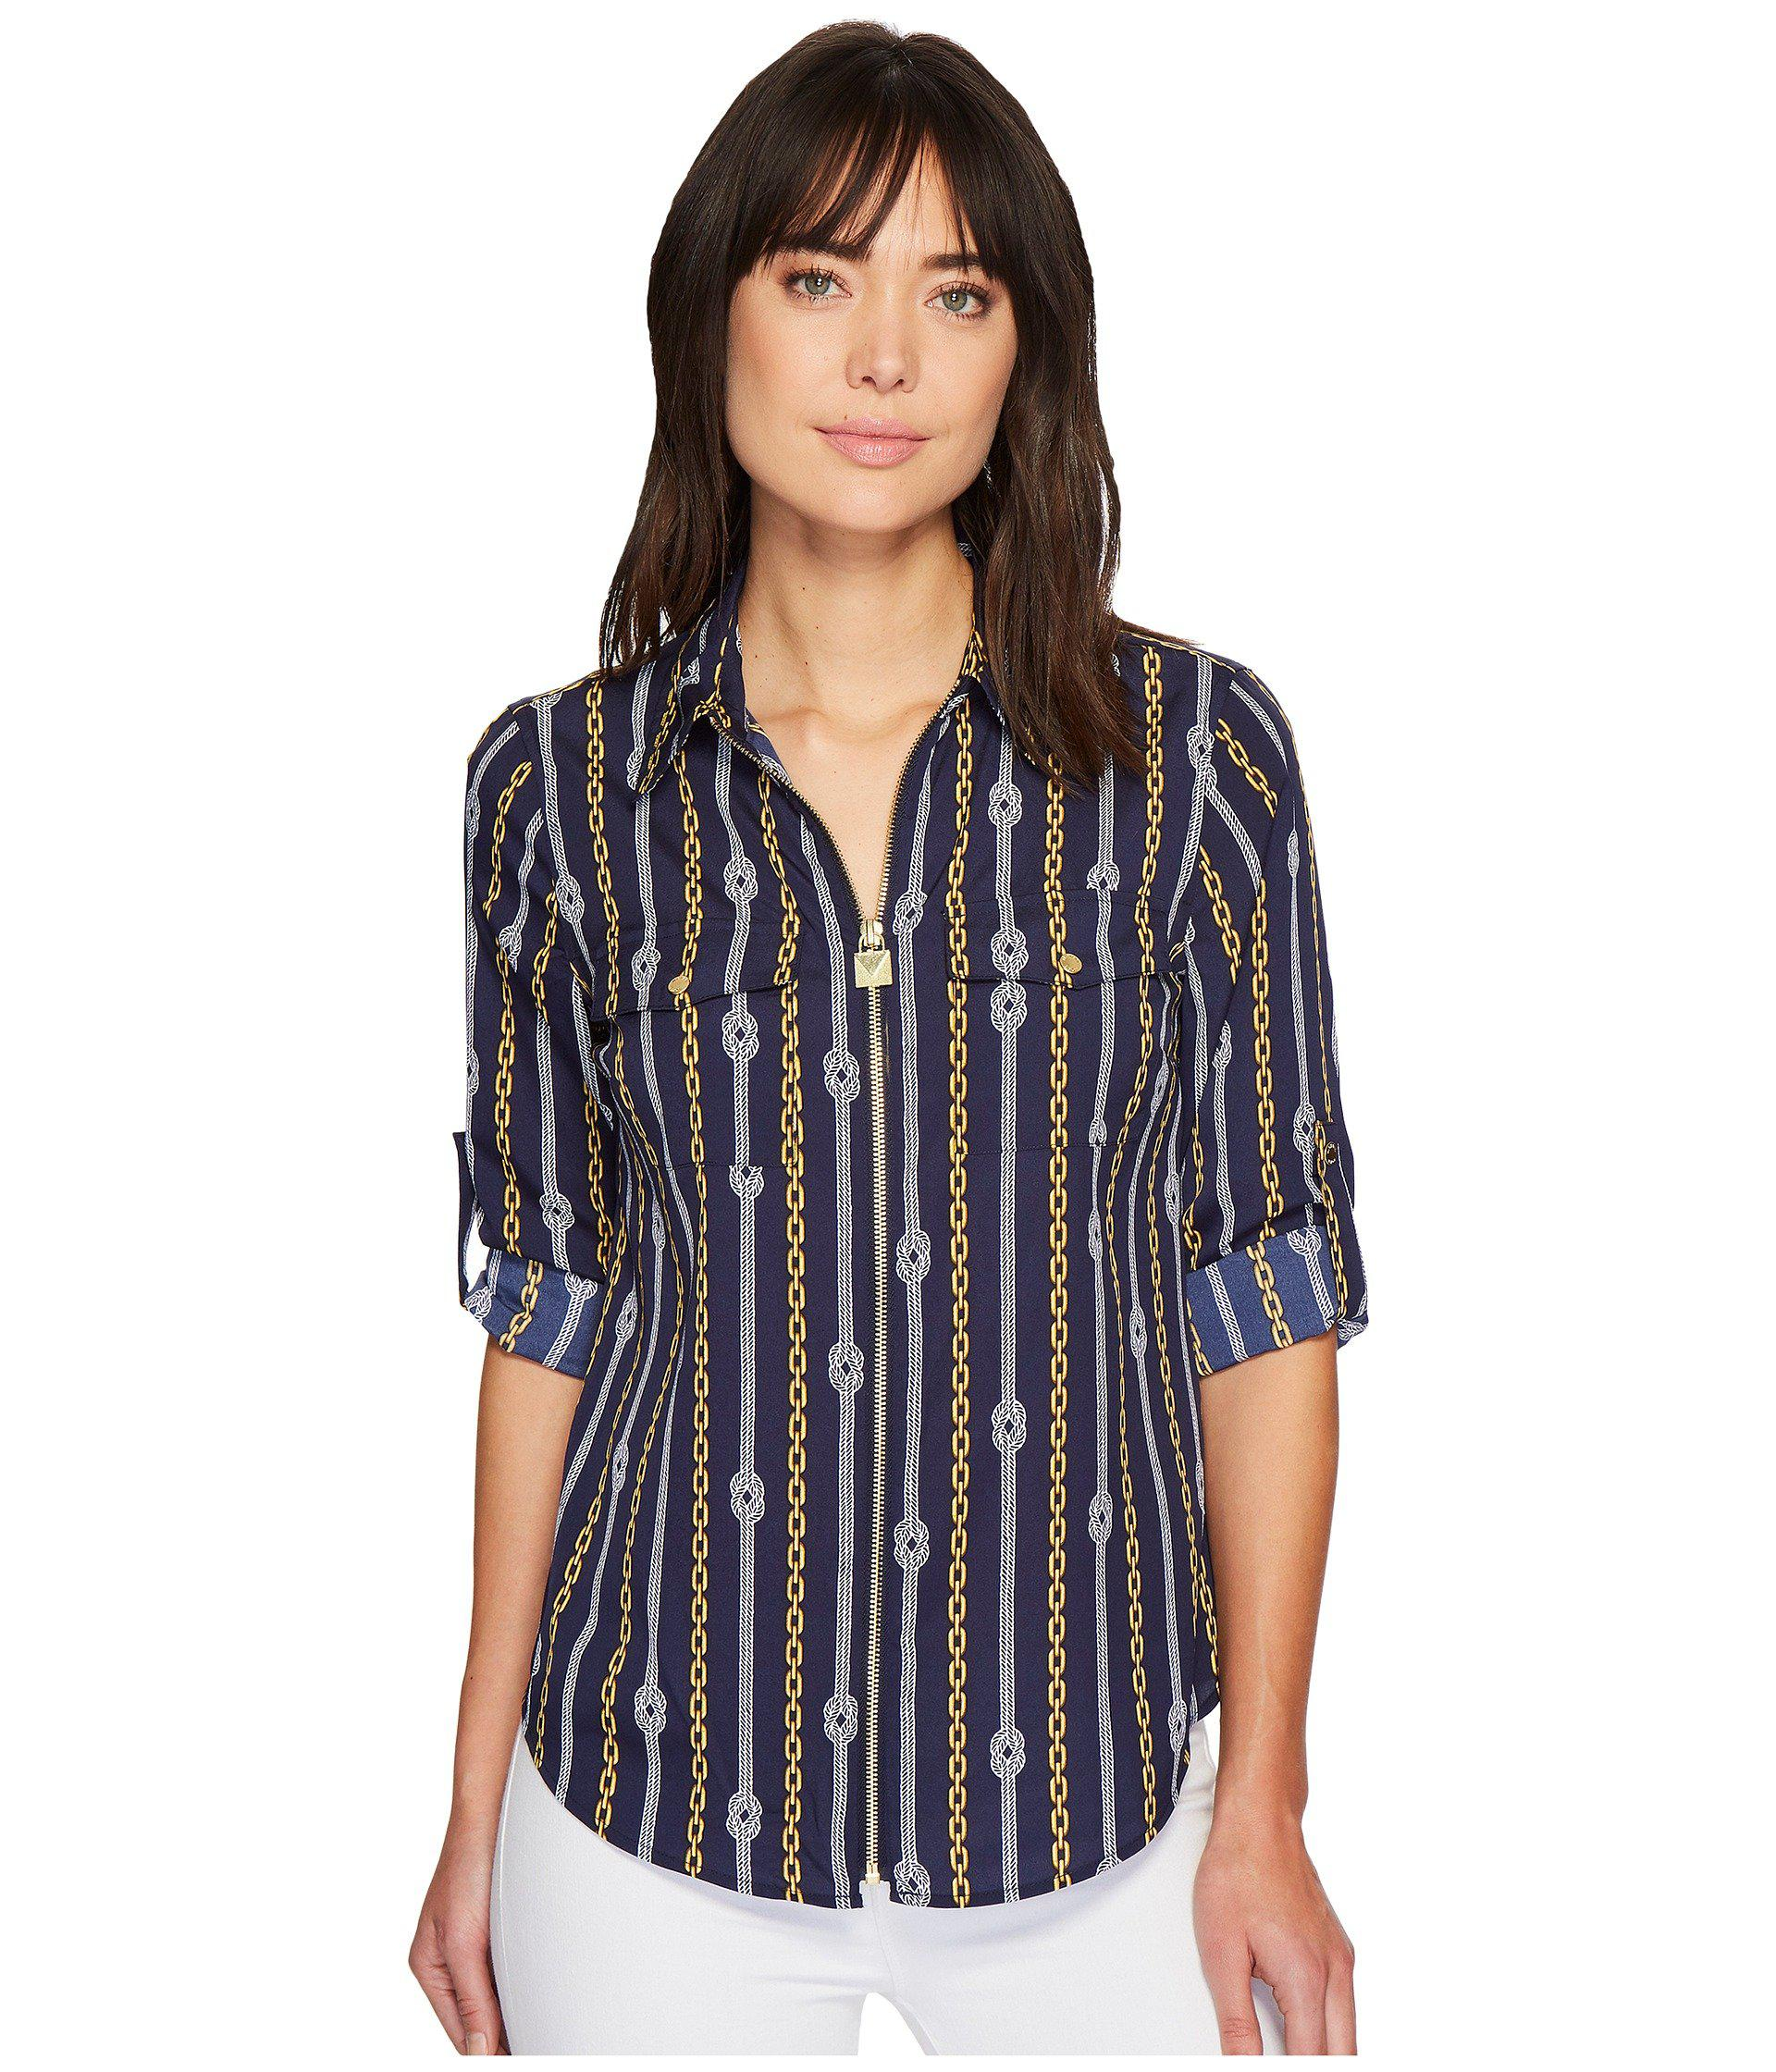 73b14995509e4 MICHAEL Michael Kors Reef Knot Lock Zip Top in Blue - Lyst